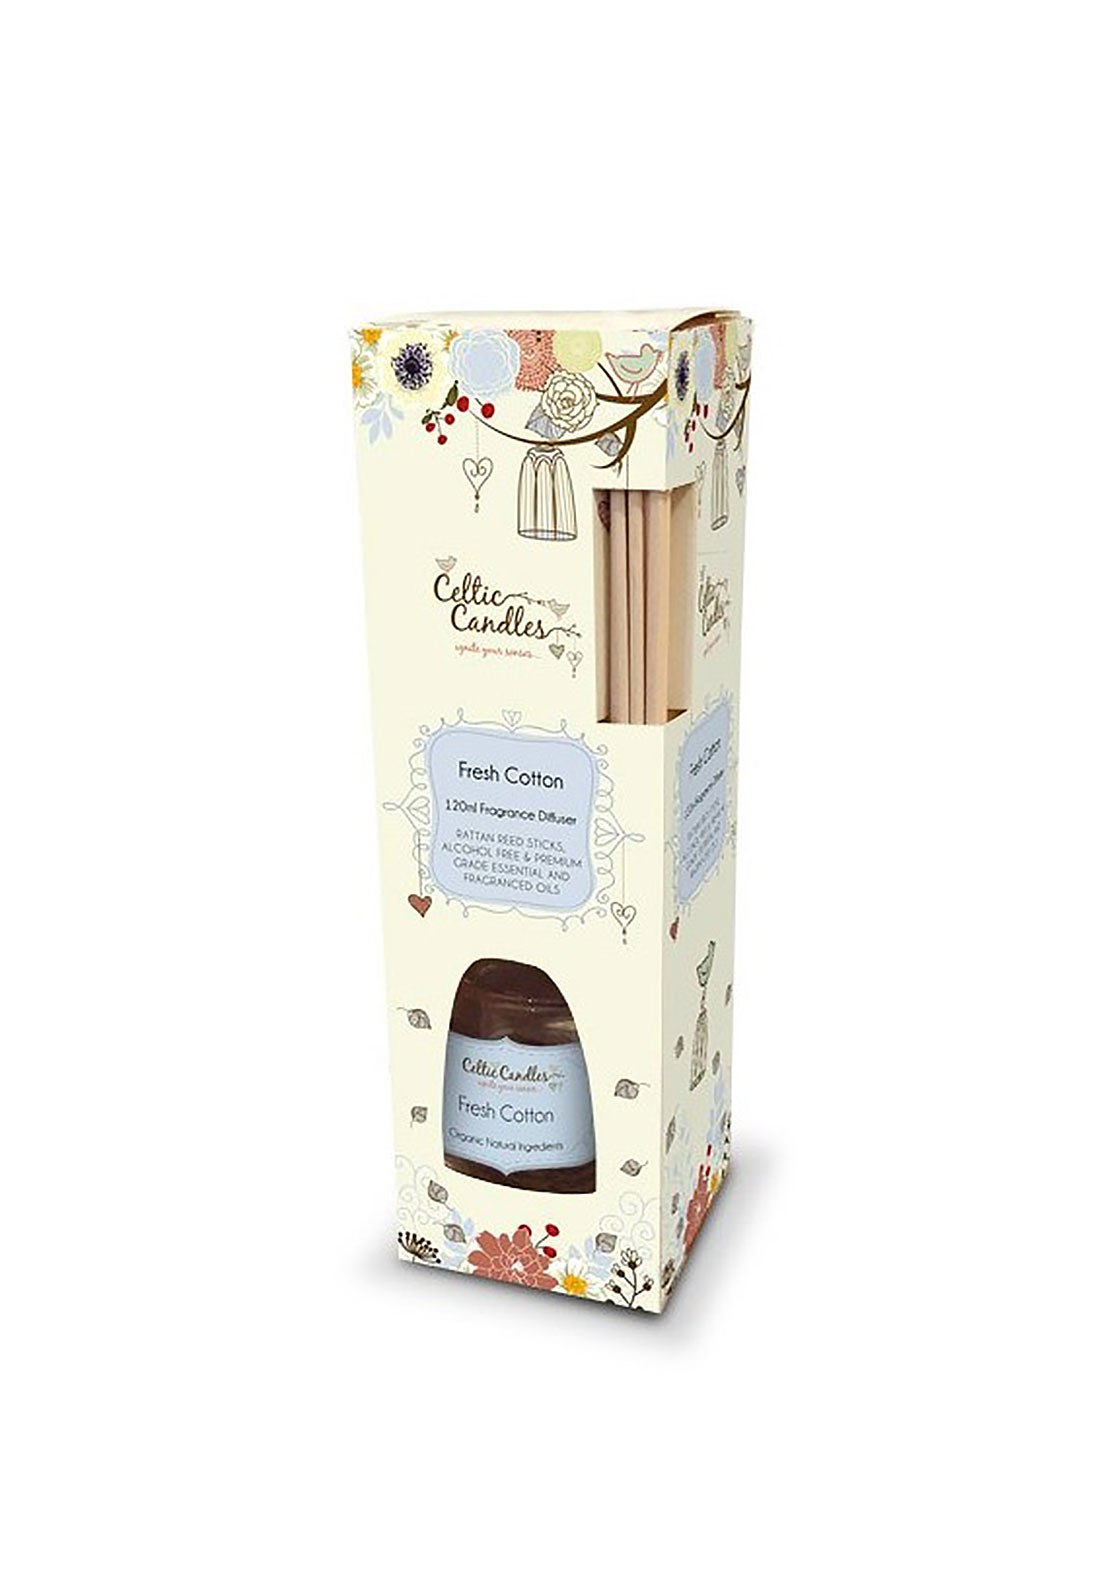 Celtic Candles Fresh Cotton Fragrance Reed Diffuser 120ml